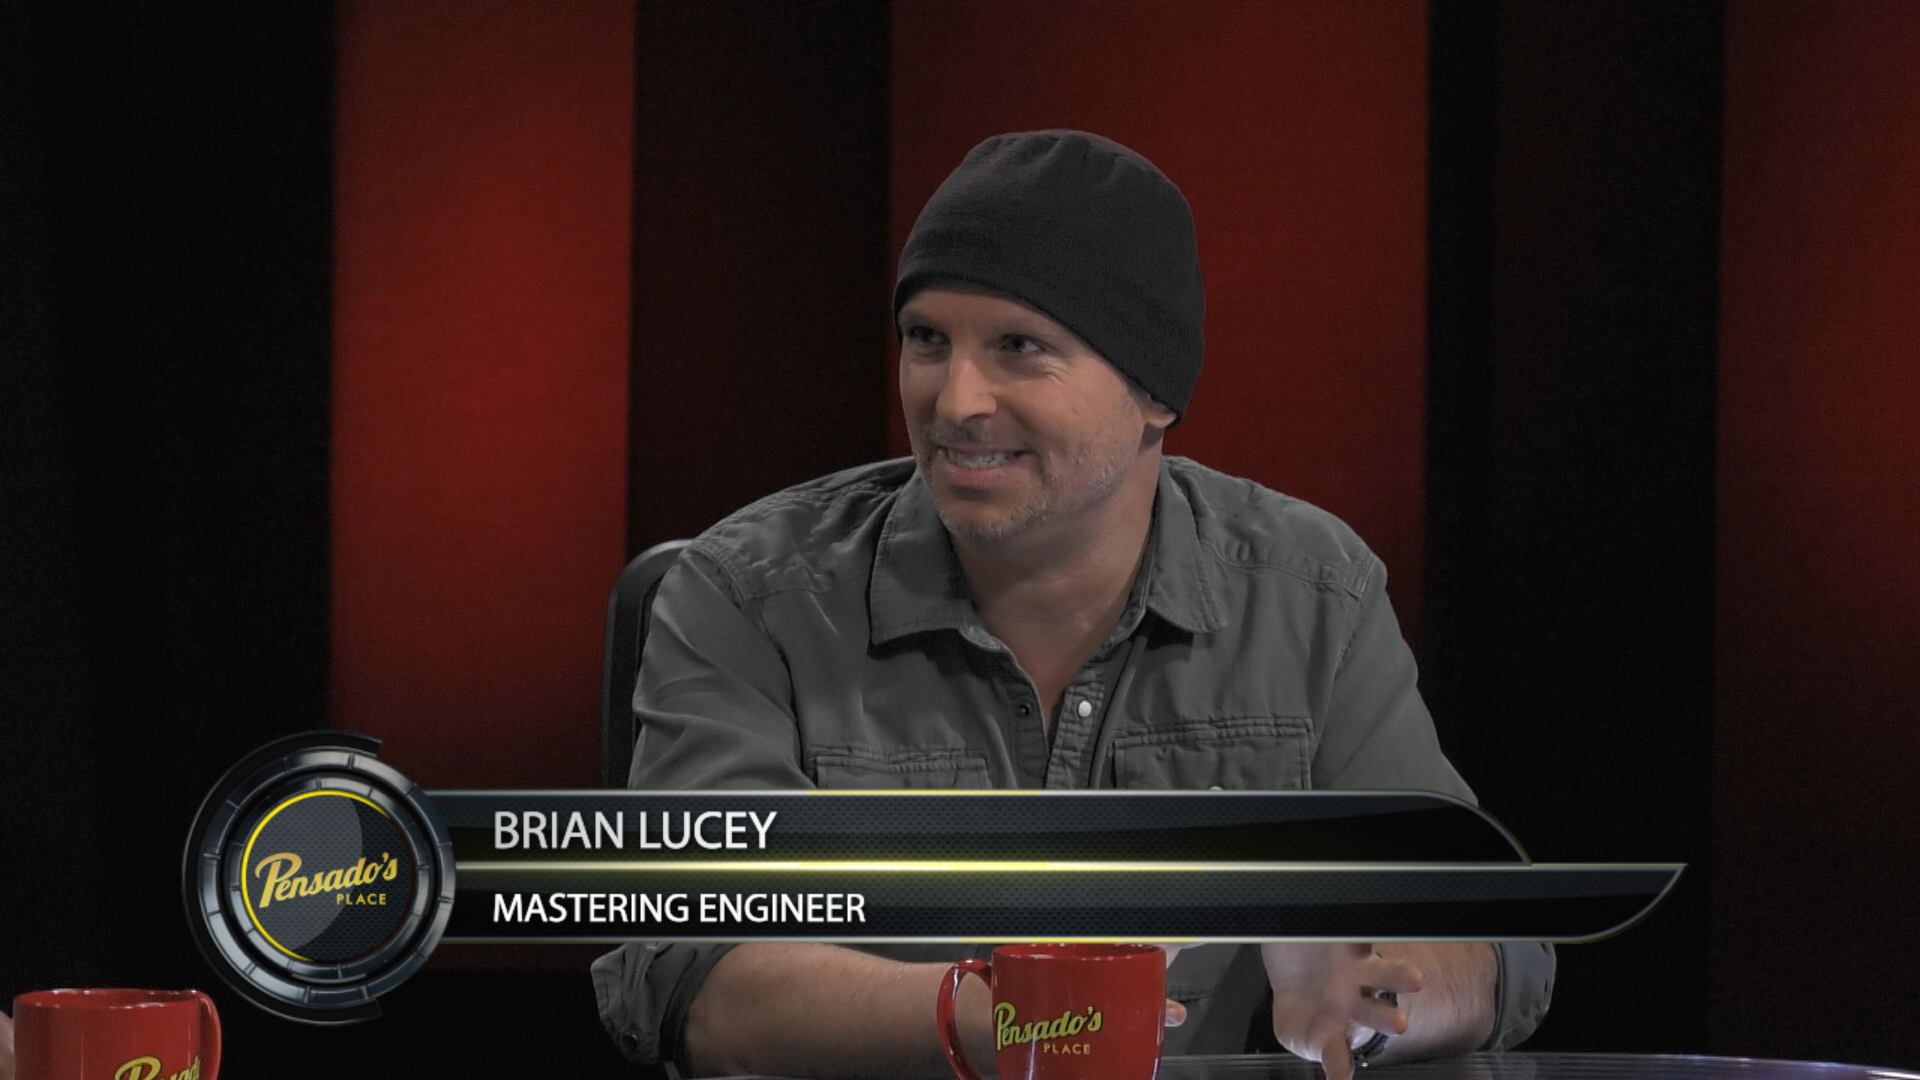 Mastering Engineer Brian Lucey